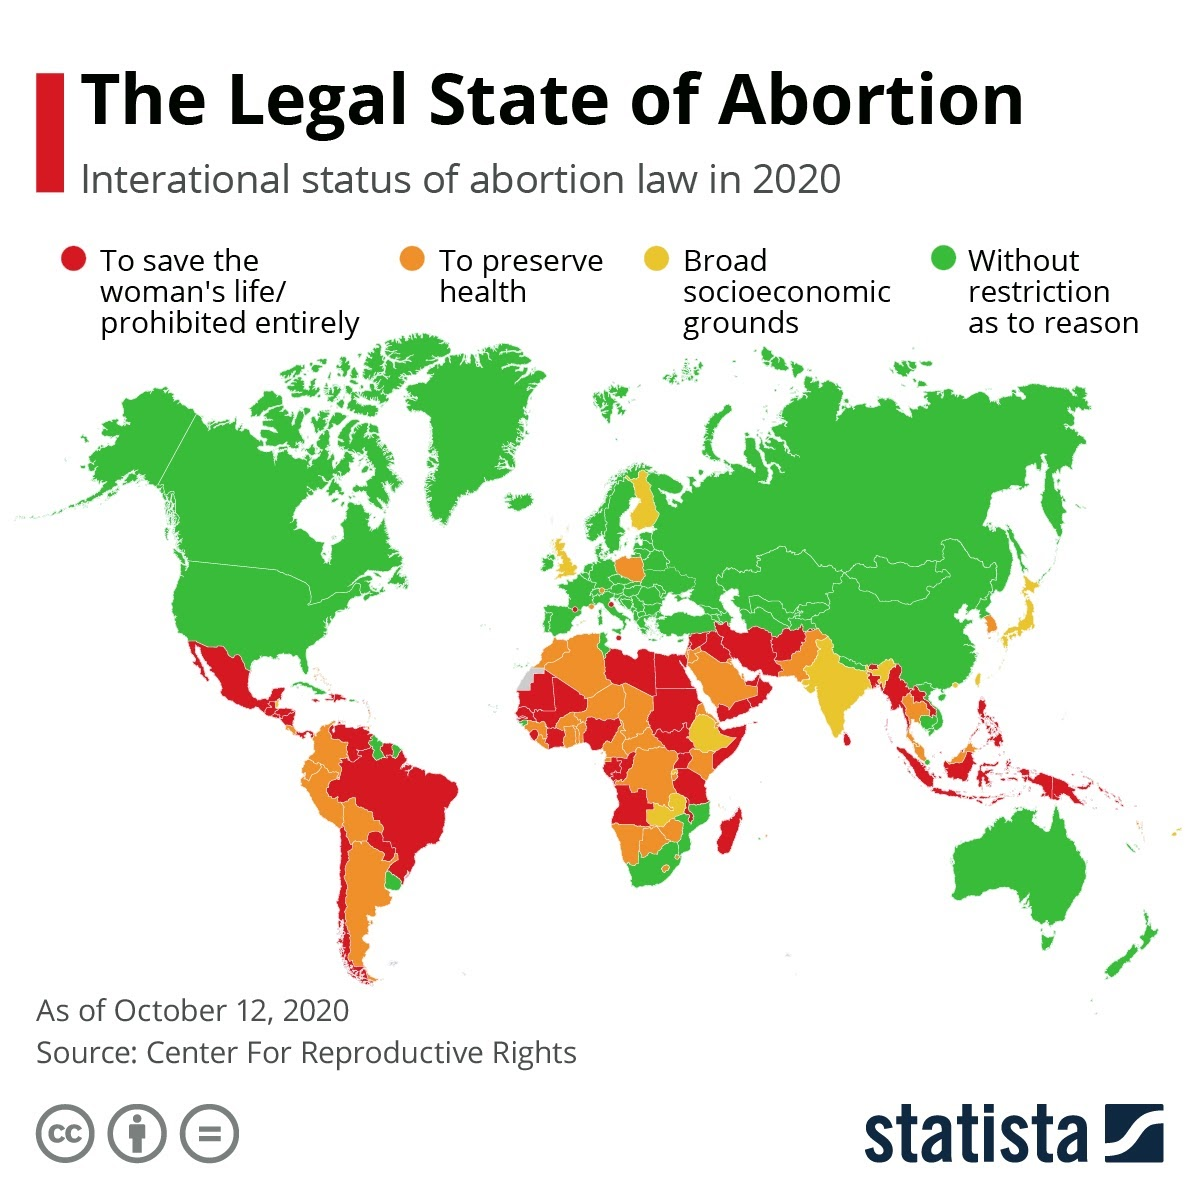 The Legal Status Of Abortion Worldwide #infographic